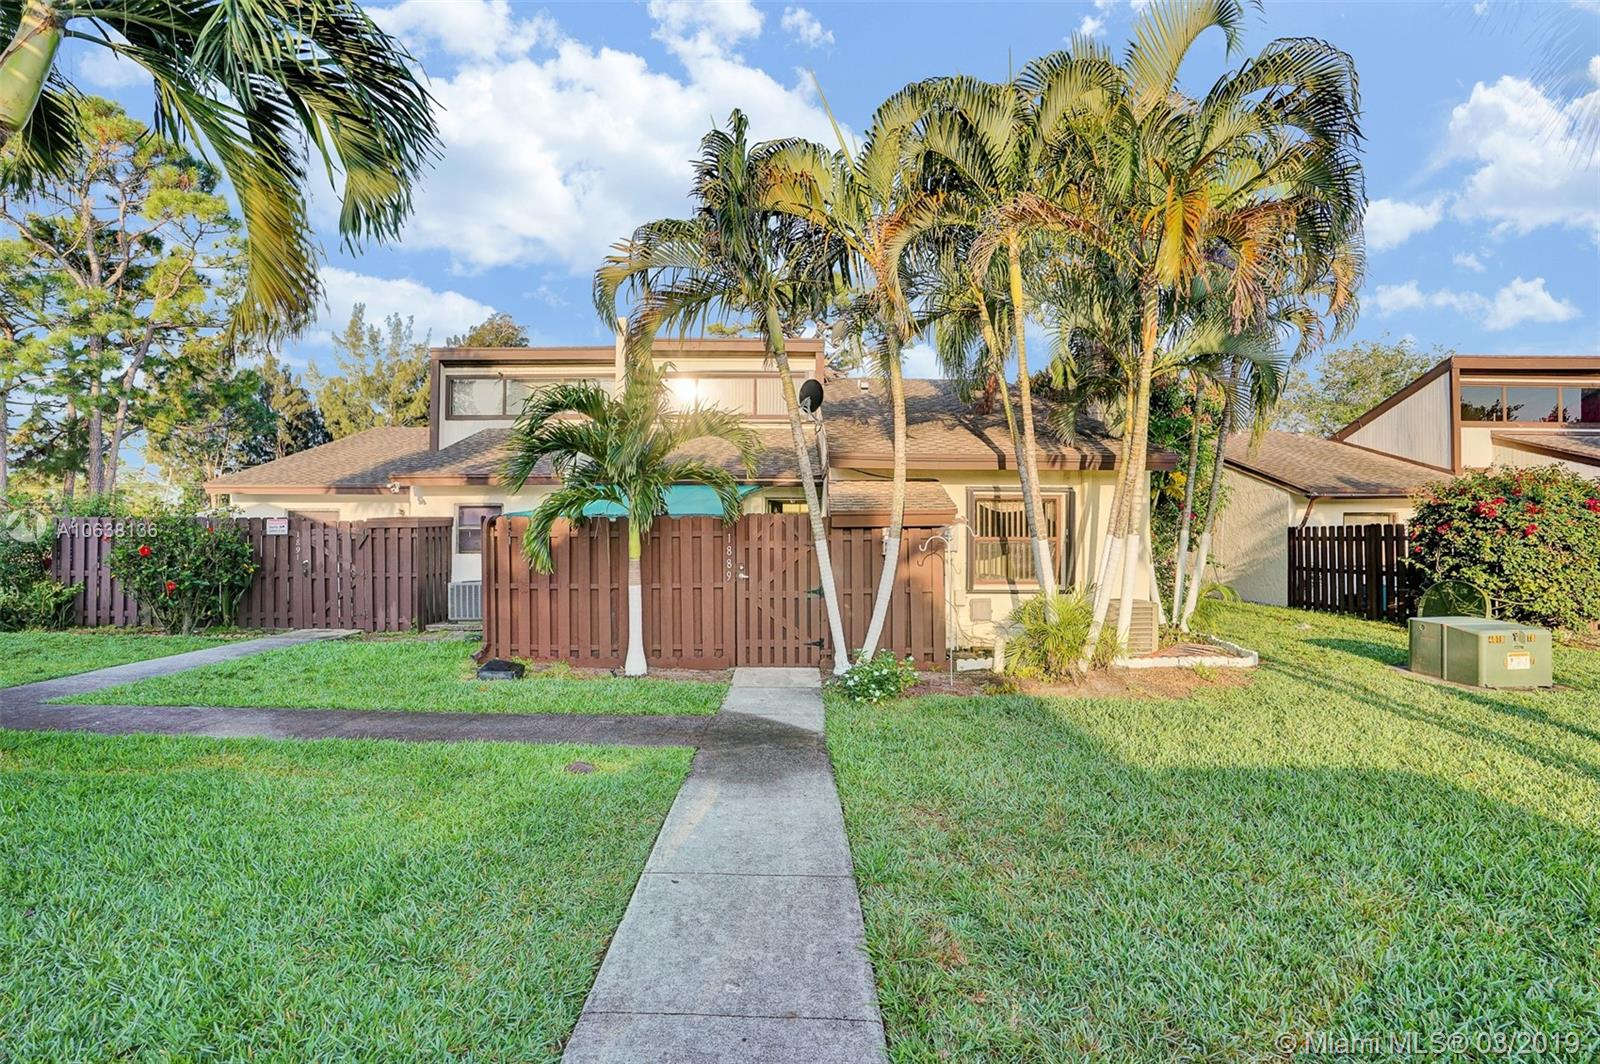 1889 Abbey Rd, West Palm Beach, FL 33415